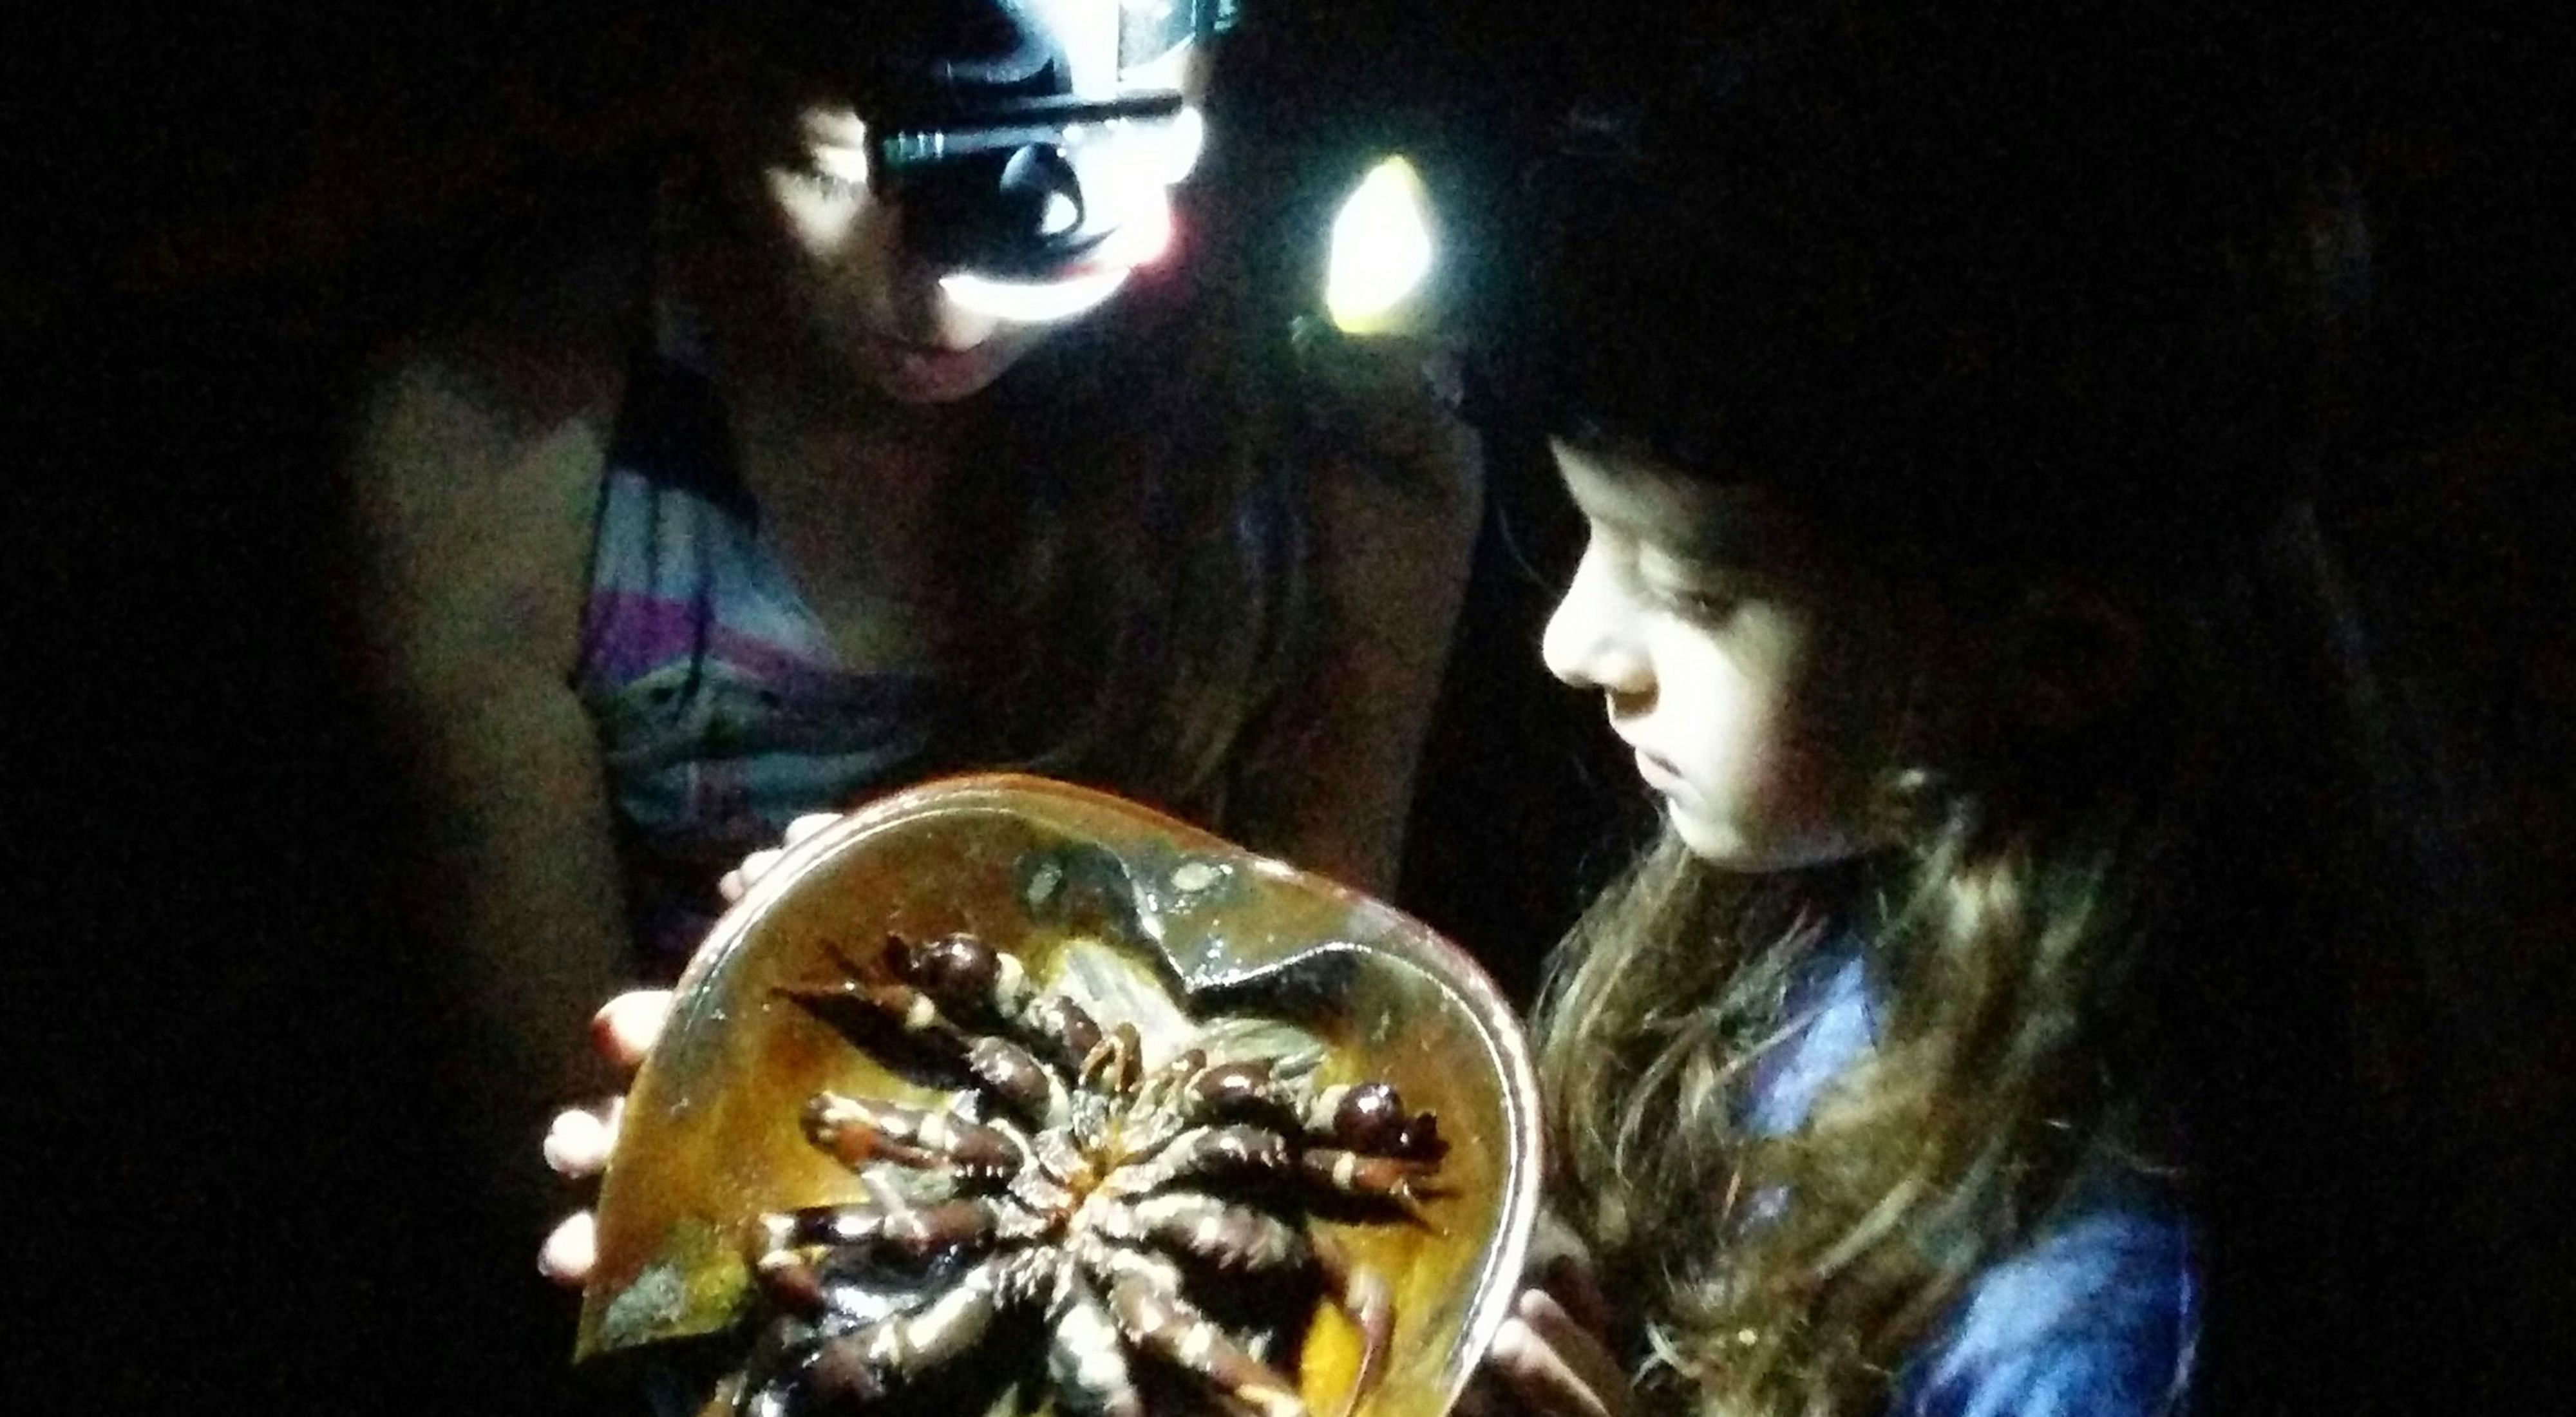 The Nature Conservancy staff member Kim Hachadoorian's daughters hold a horseshoe crab during the surveying process. While horseshoe crabs may look a little scary, they are indeed harmless.